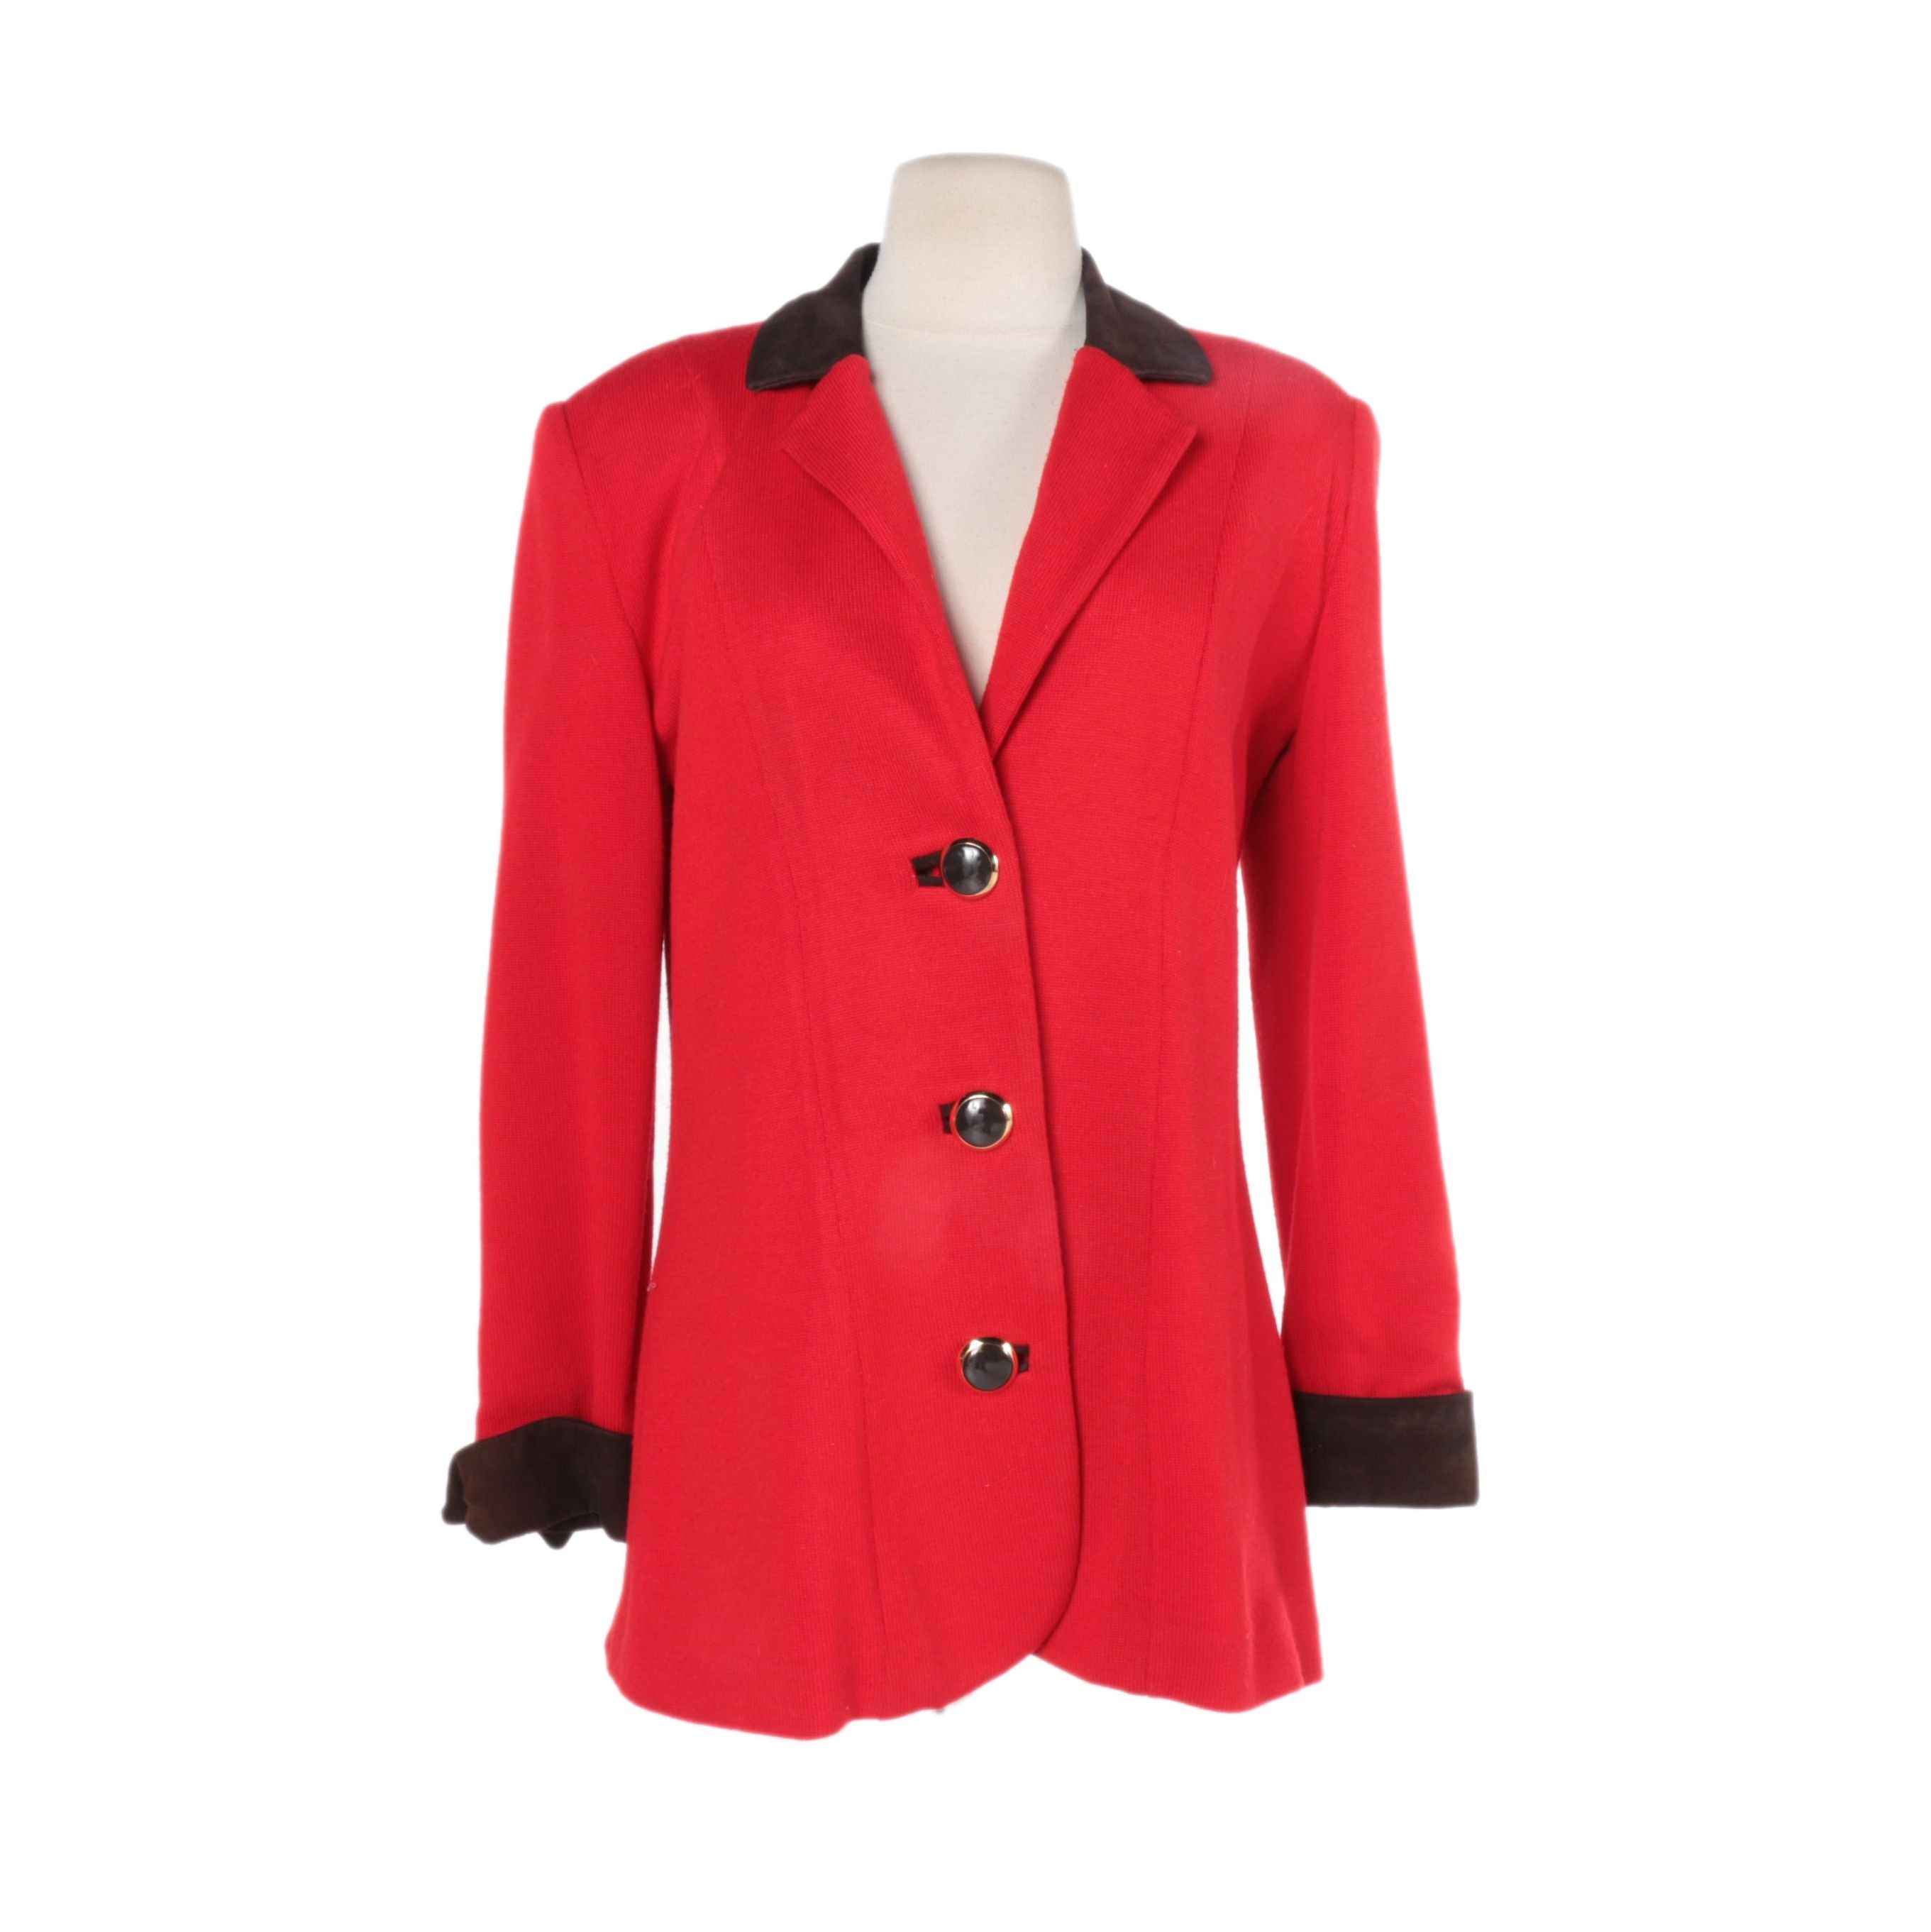 Women's St. John Sportswear Red Jacket